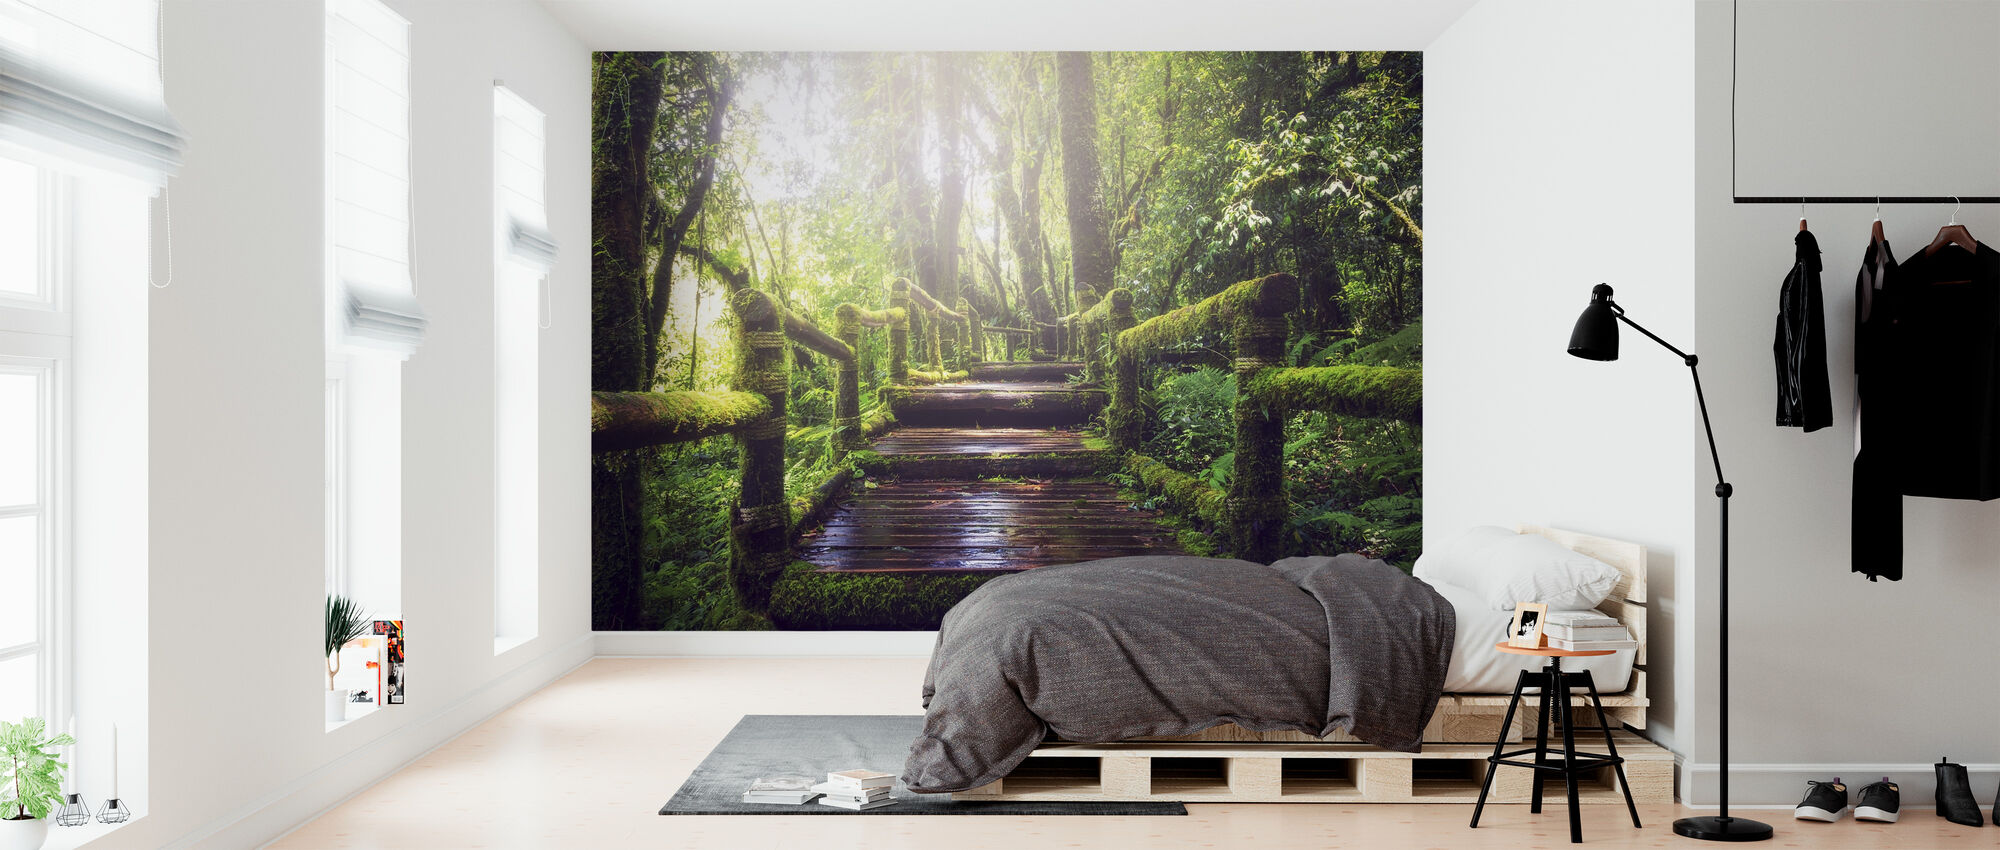 Pathway in the Forest - Wallpaper - Bedroom